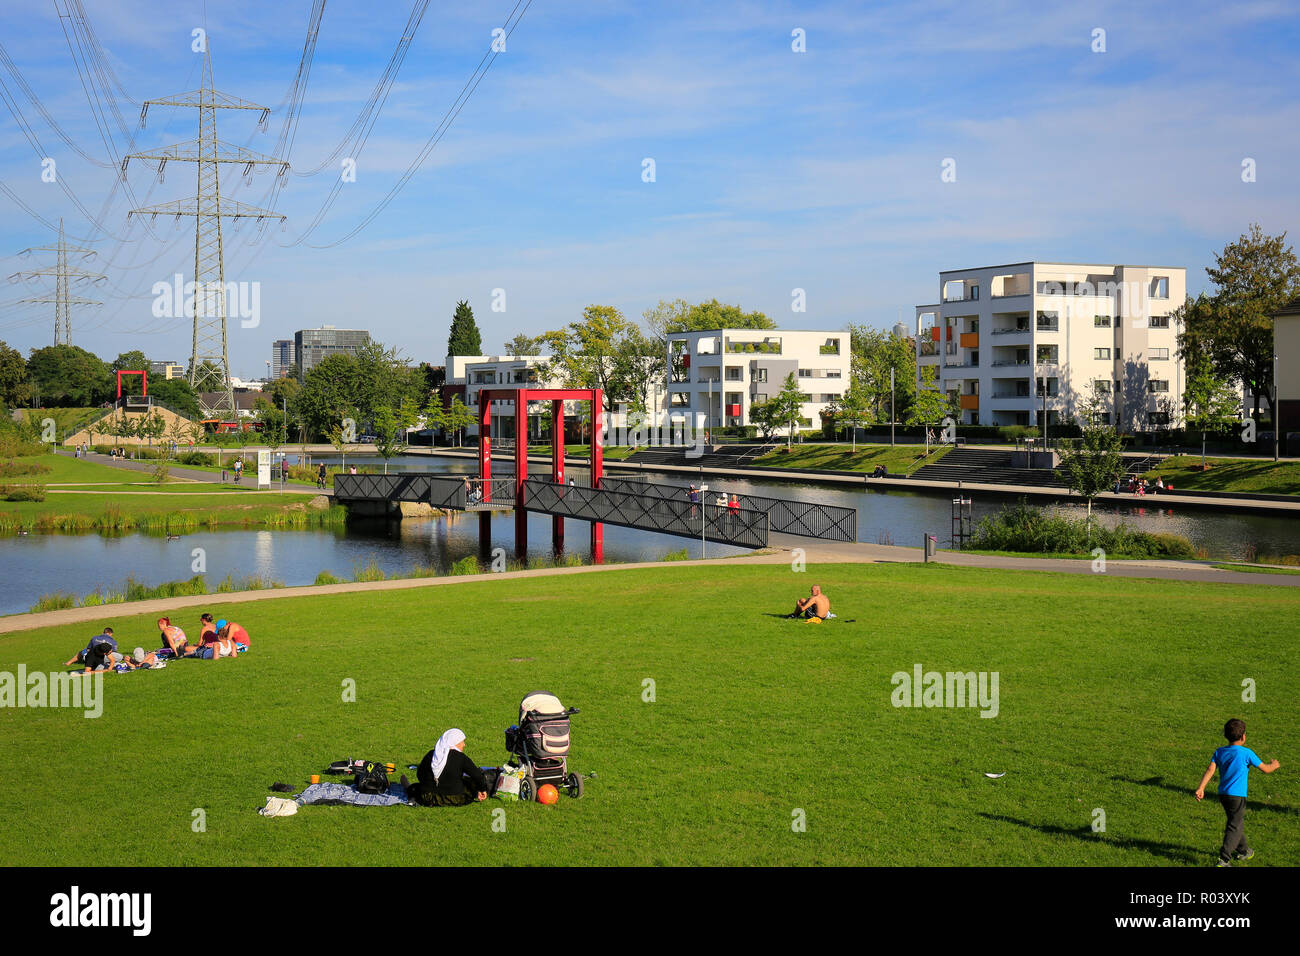 Essen, Ruhr area, Germany, urban development project Niederfeldsee with cycle route Ruhr RS 1 - Stock Image